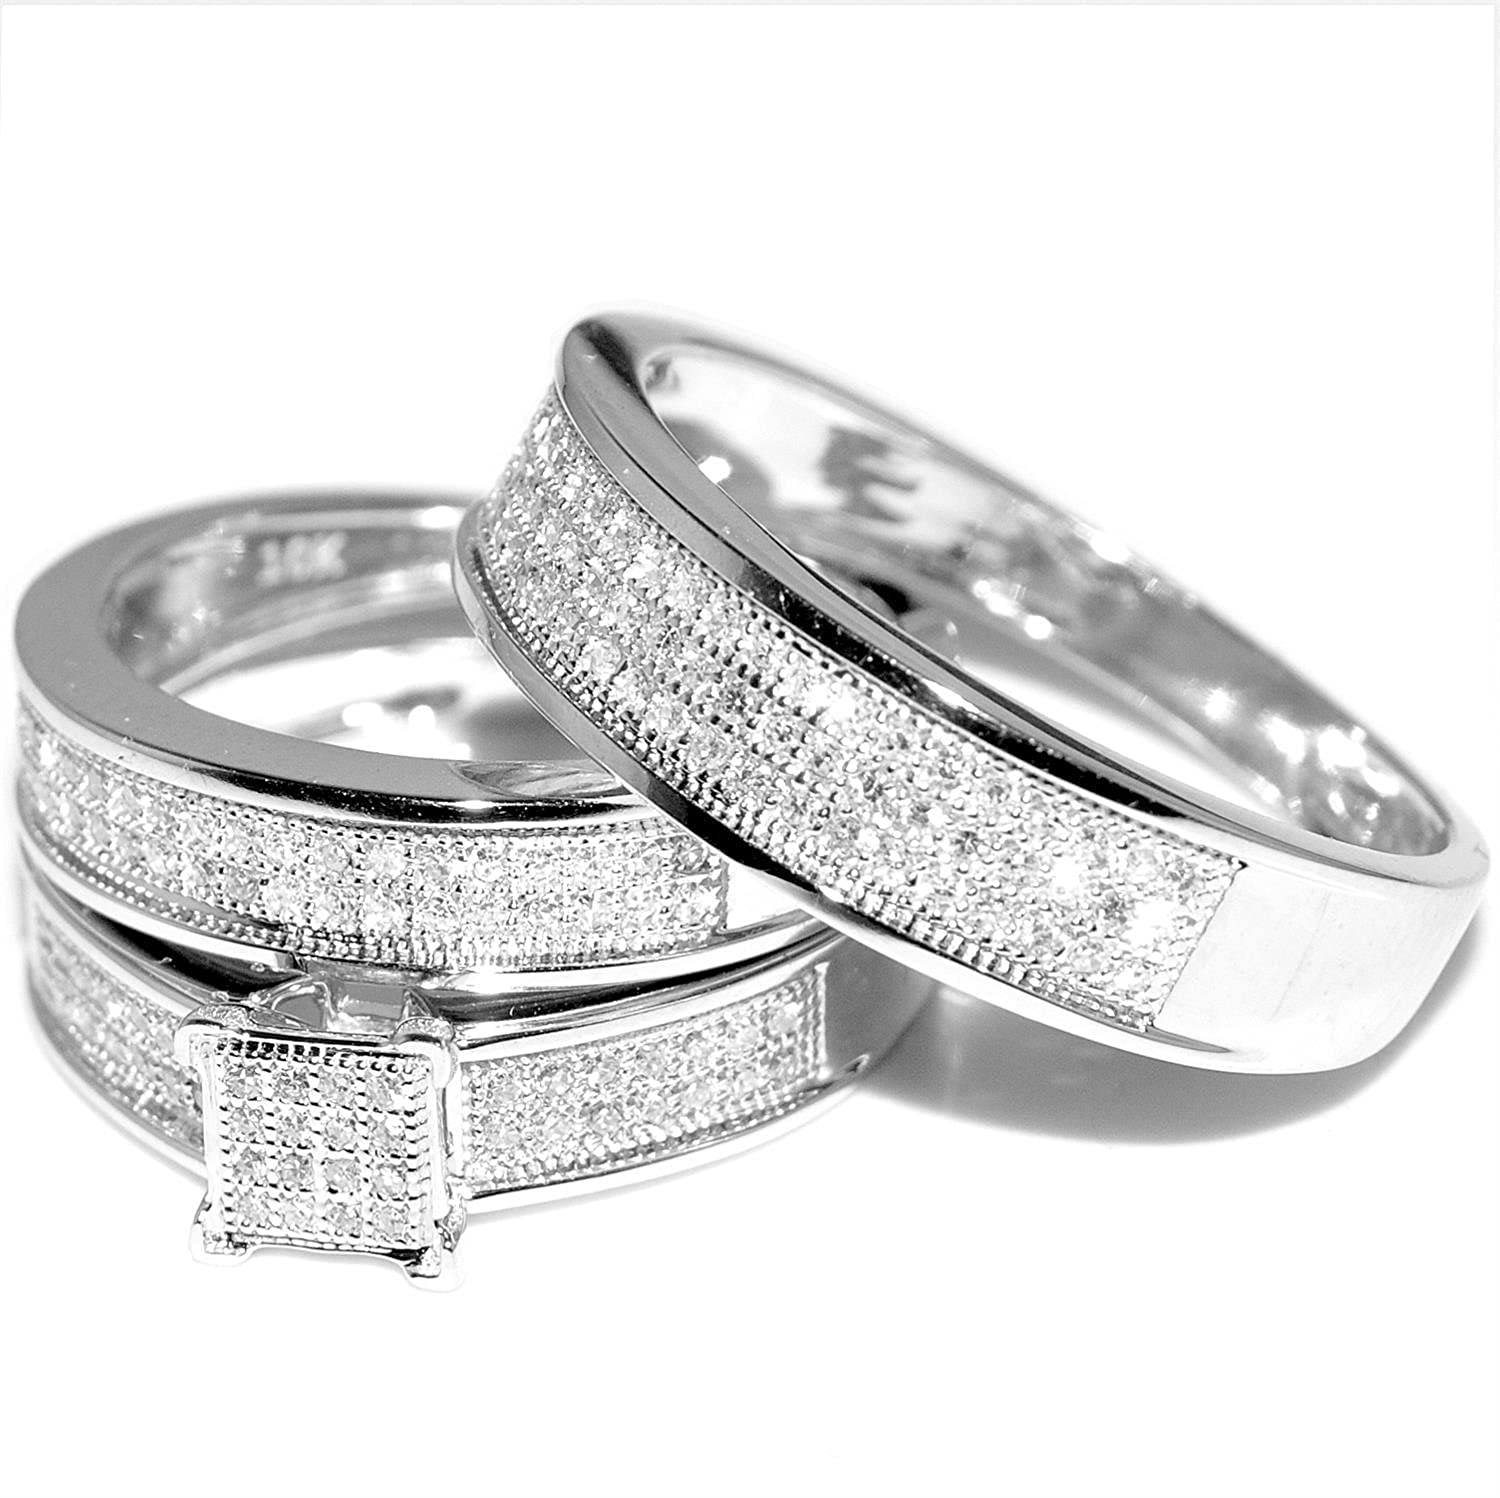 Superieur White Gold Trio Wedding Set Mens Womens Wedding Rings Matching 0.40cttw  Diamond|Amazon.com